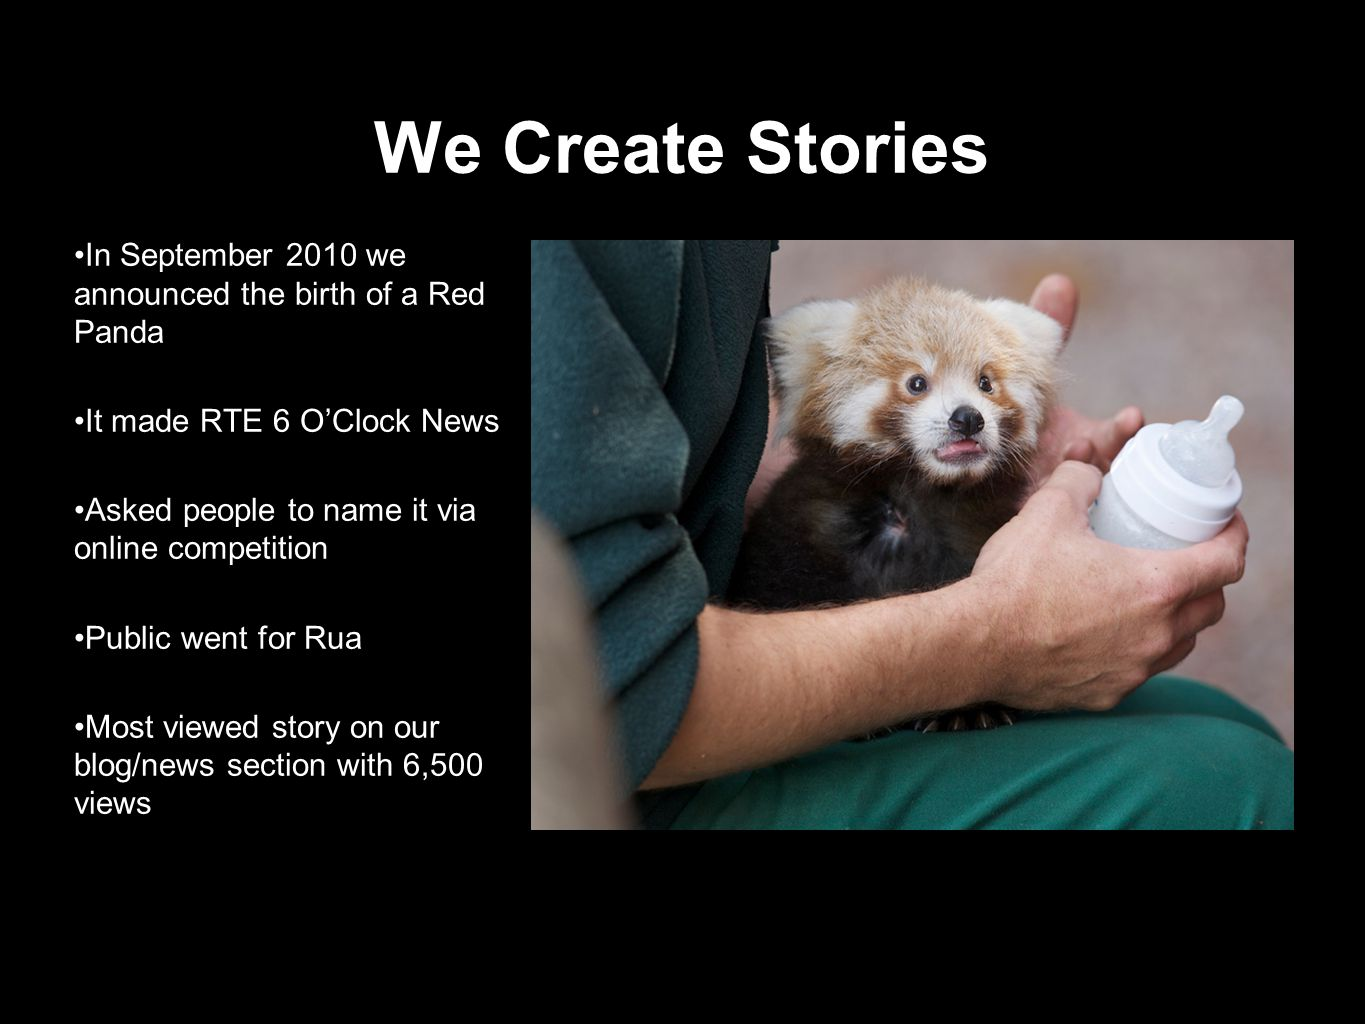 We Create Stories In September 2010 we announced the birth of a Red Panda It made RTE 6 OClock News Asked people to name it via online competition Public went for Rua Most viewed story on our blog/news section with 6,500 views